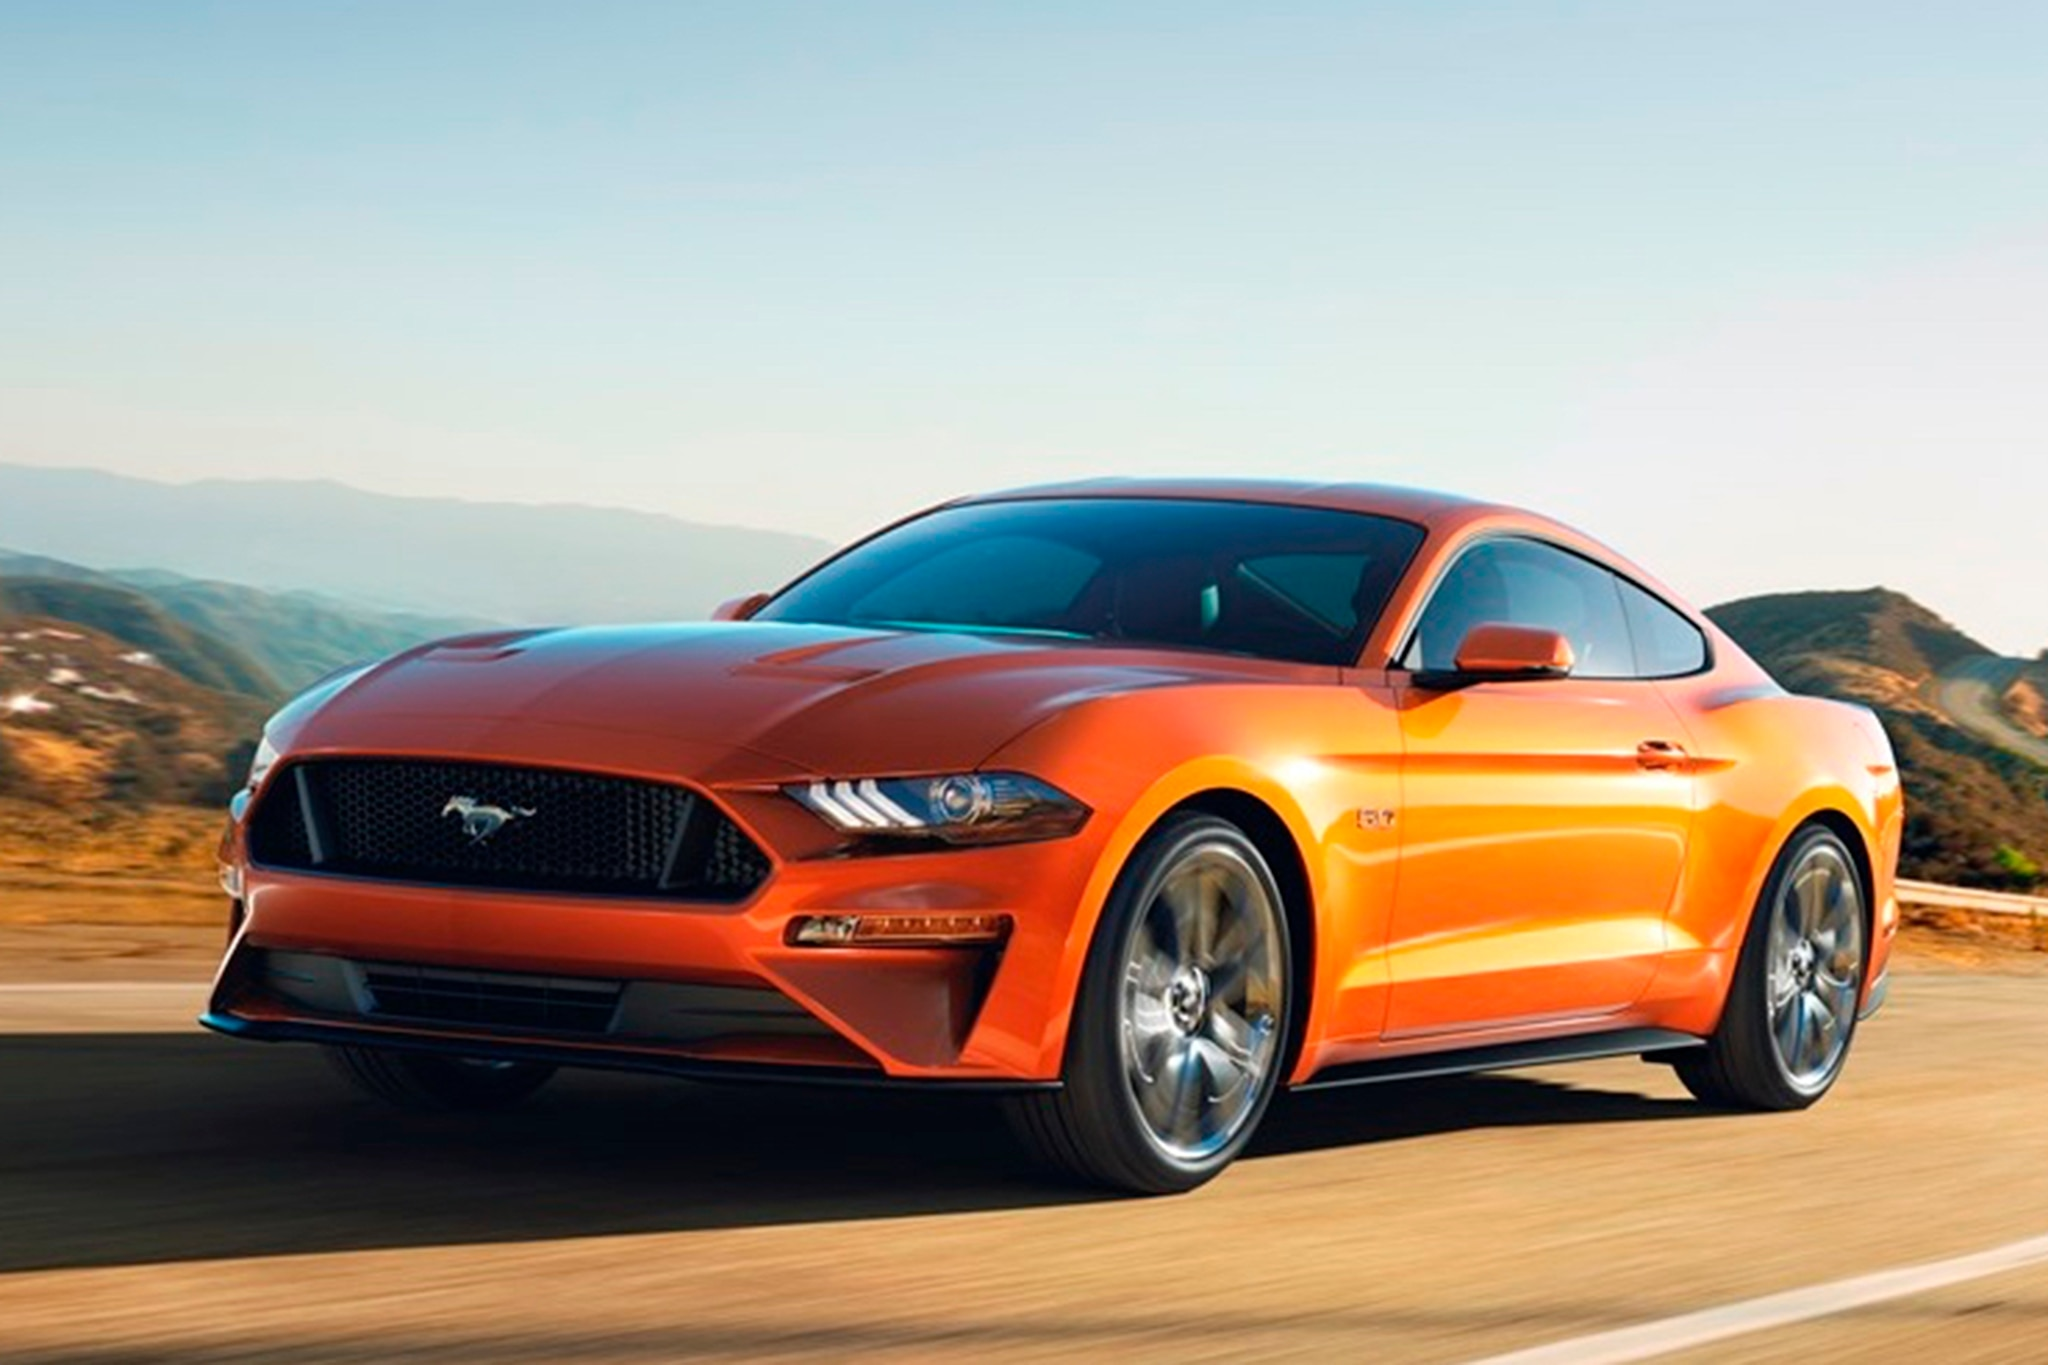 Ford Mustang GT is faster than a Porsche 911